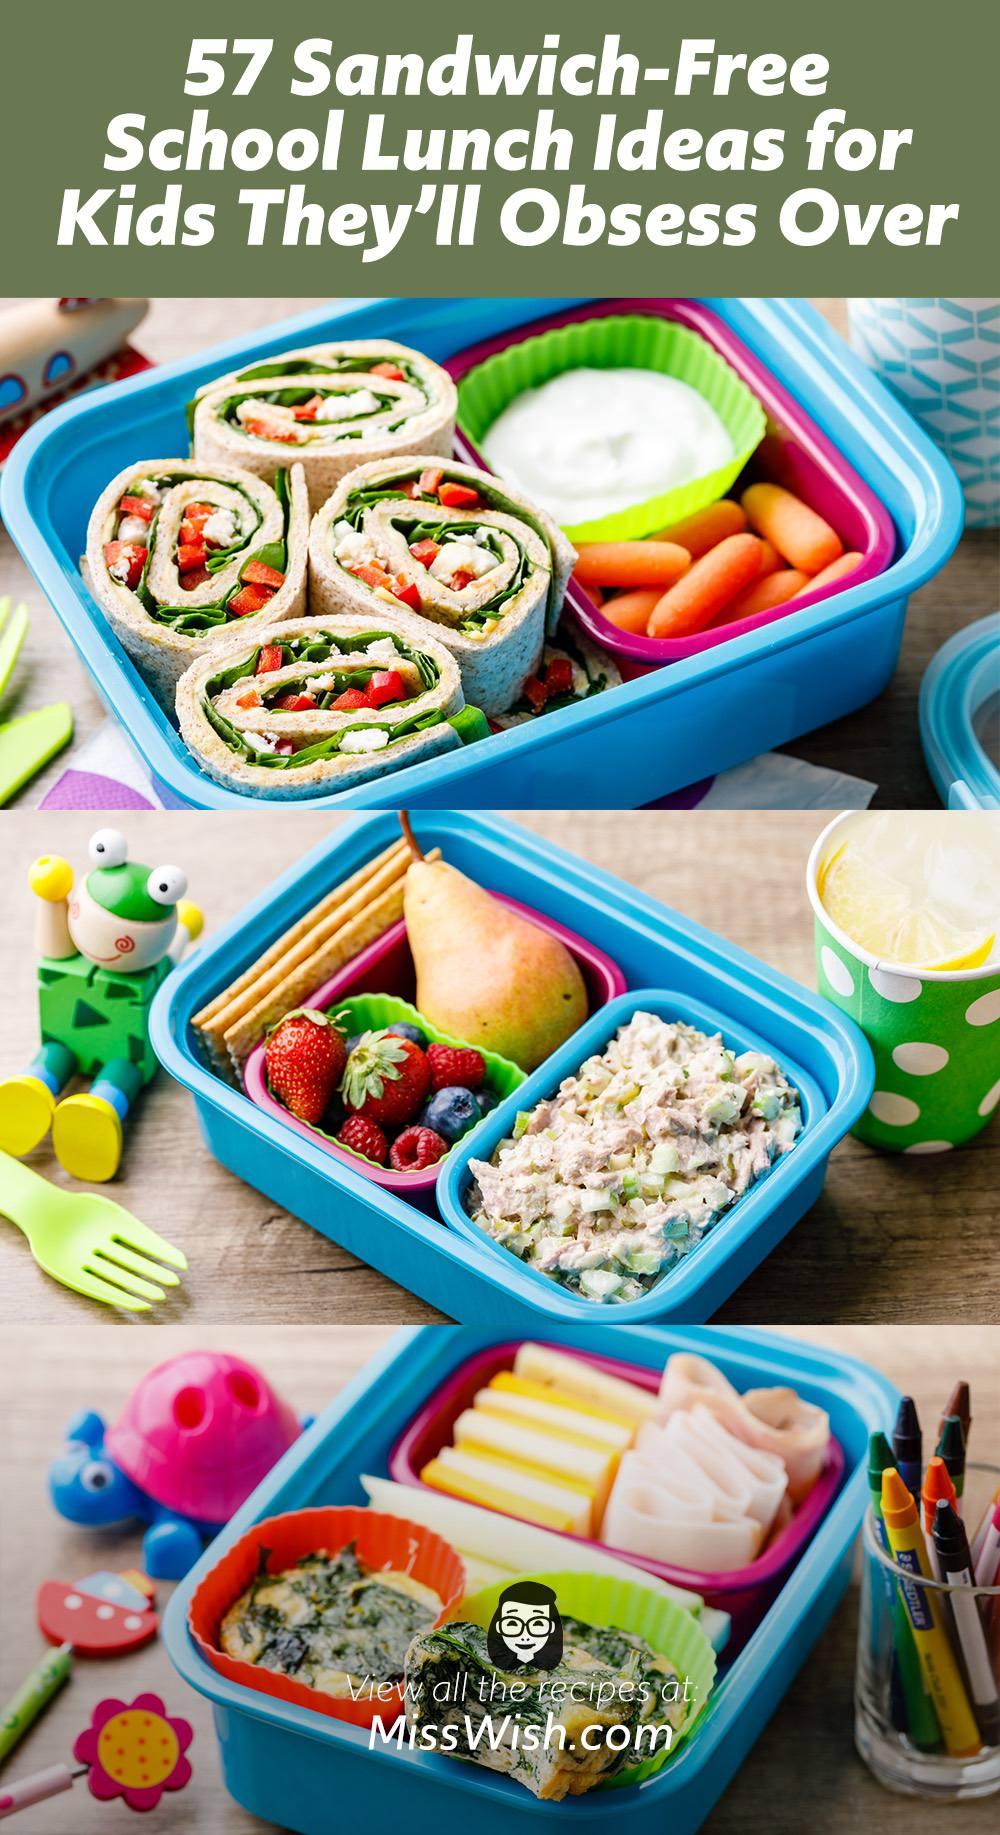 57 Sandwich-Free School Lunch Ideas for Kids They Will Obsess Over